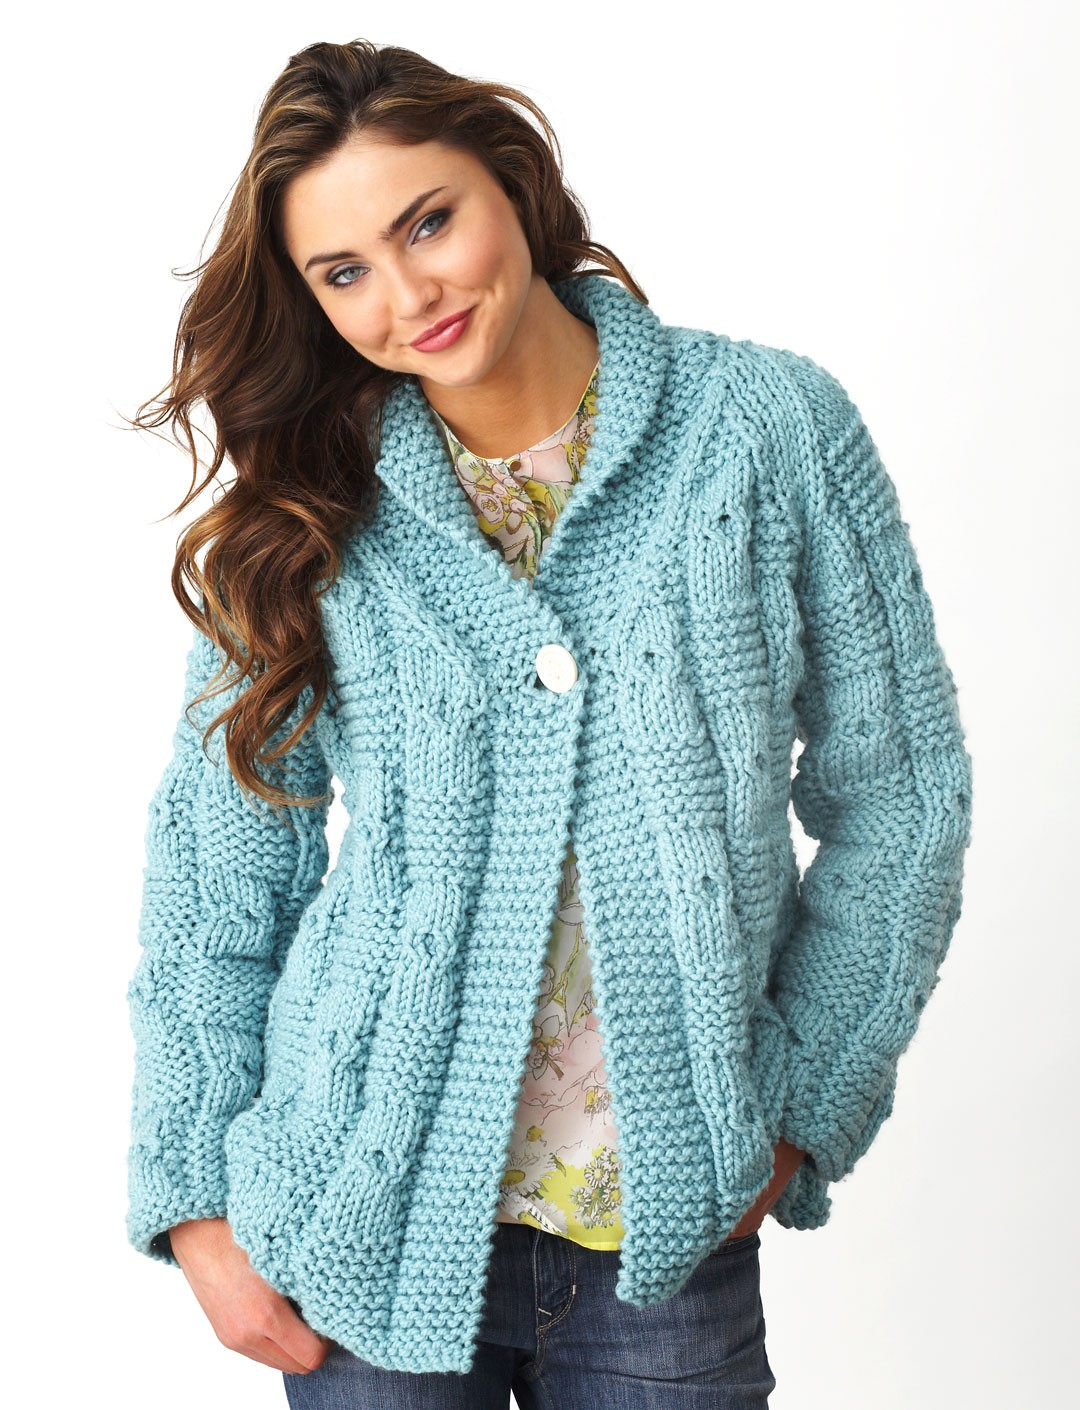 Knitting Patterns Cardigan Ladies : Bernat Textured Checks Cardigan, Knit Pattern Yarnspirations